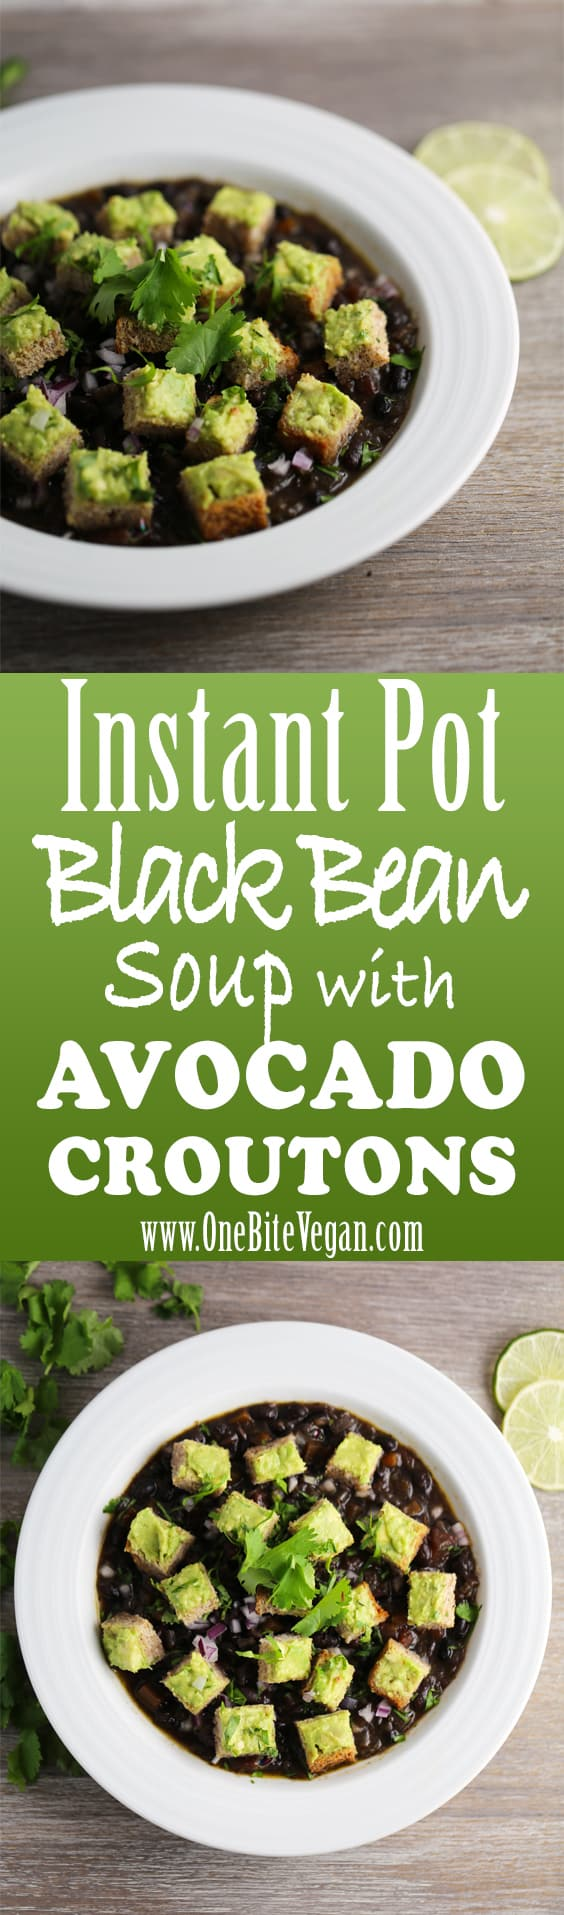 Instant pot black bean soup with avocado croutons. Easy to make vegan black bean soup topped with avocado bread croutons, red onion, lime, and cilantro.